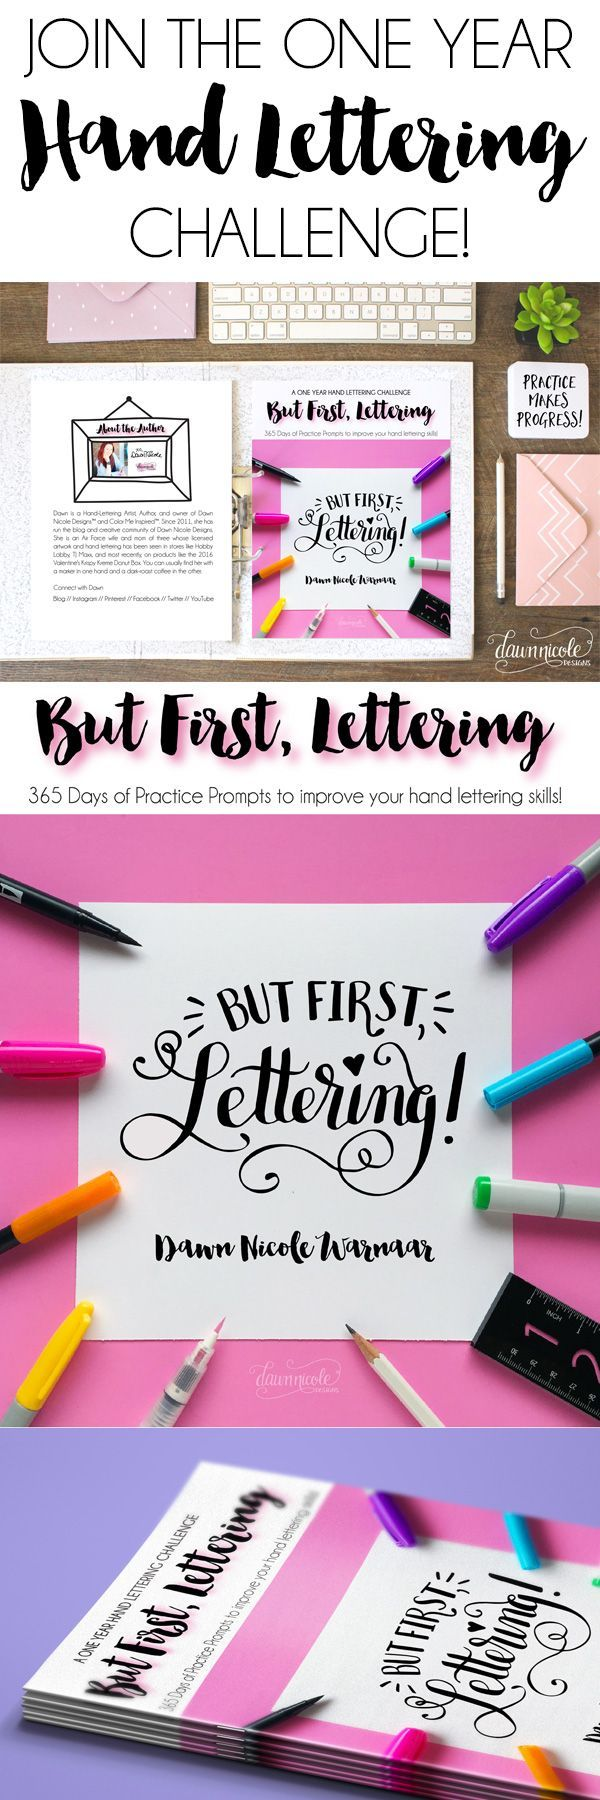 """But First, Lettering: A One Year Hand Lettering Challenge. 365 Days of Prompts to eliminate the """"What should I letter?"""" part out of practicing! 